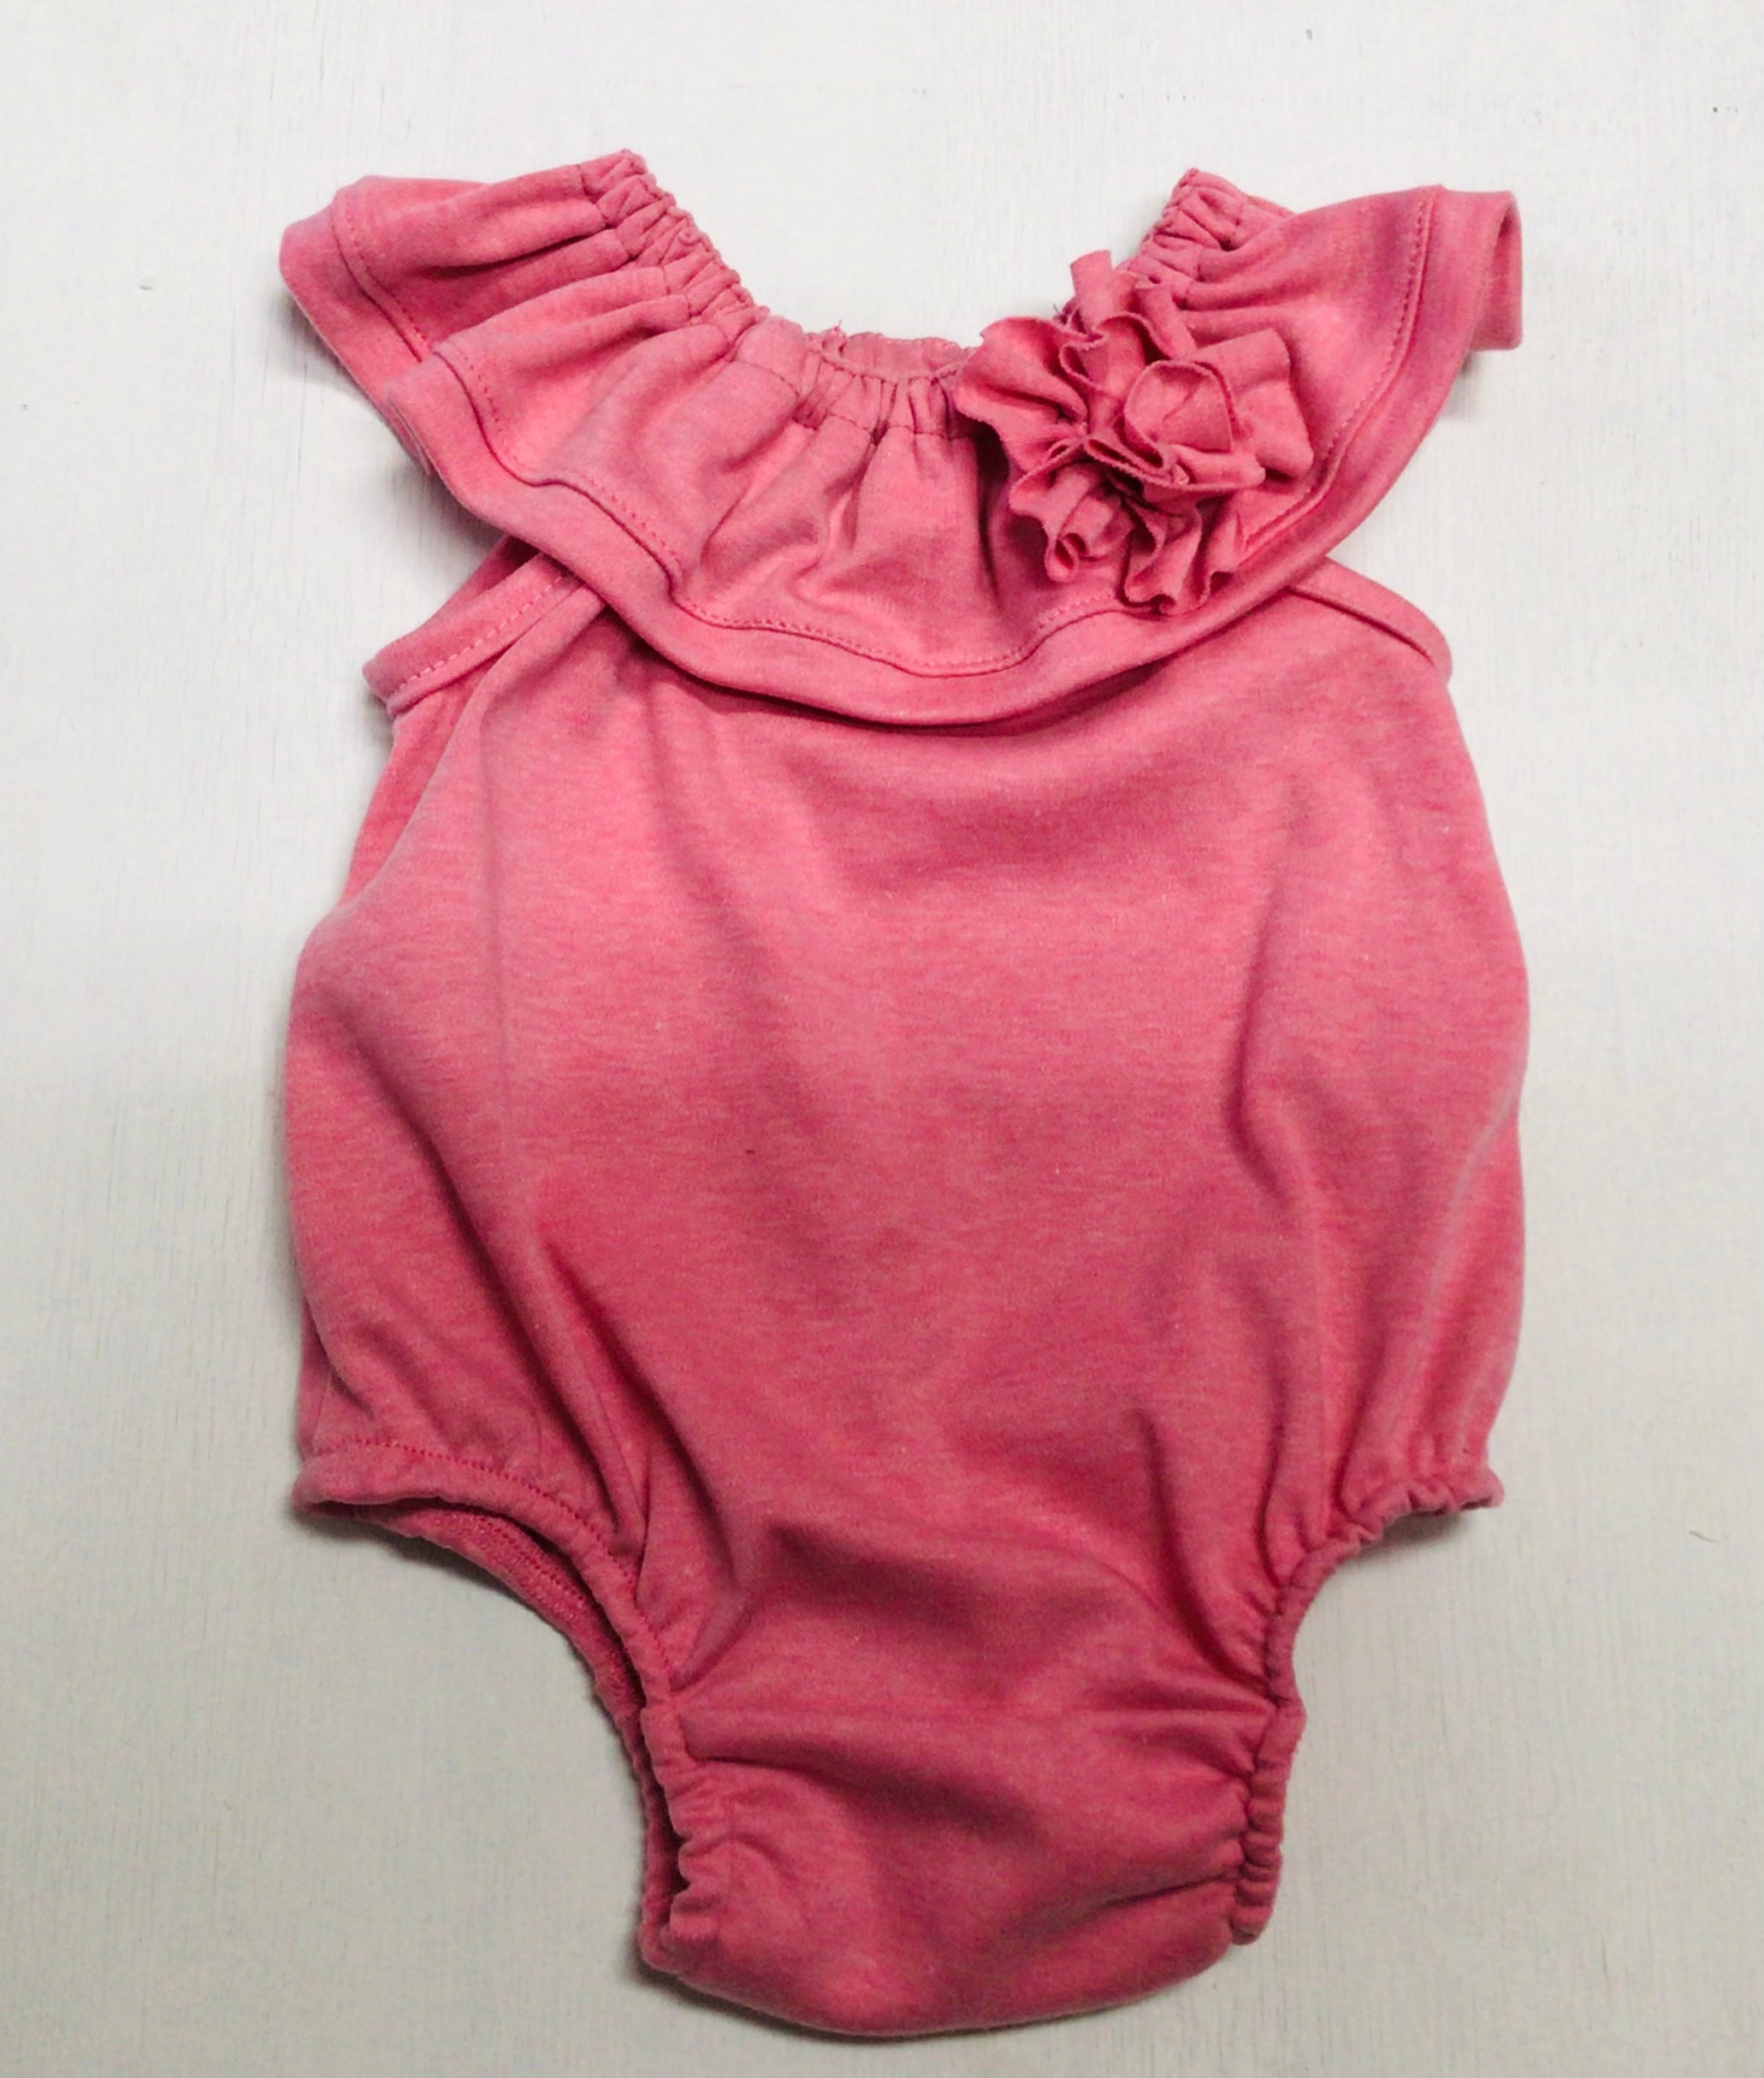 Knit Baby Romper 0-6 month